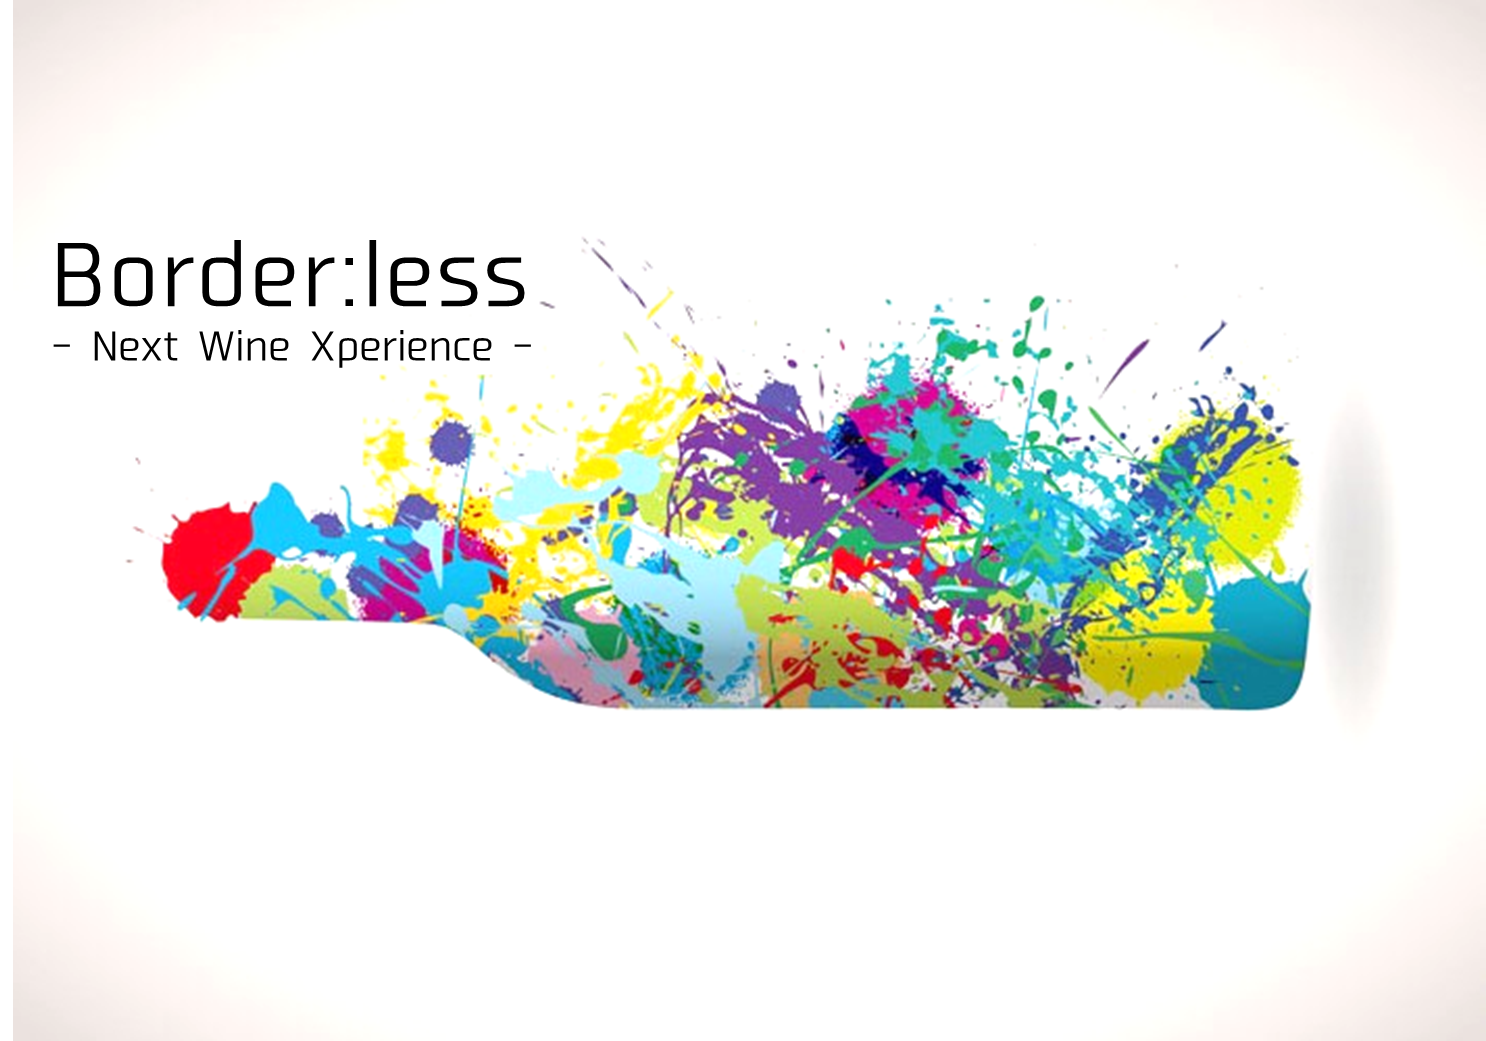 Borderless Next Wine Experience Project 「Border:less vol.4 ~ワインの切断面~」開催します。